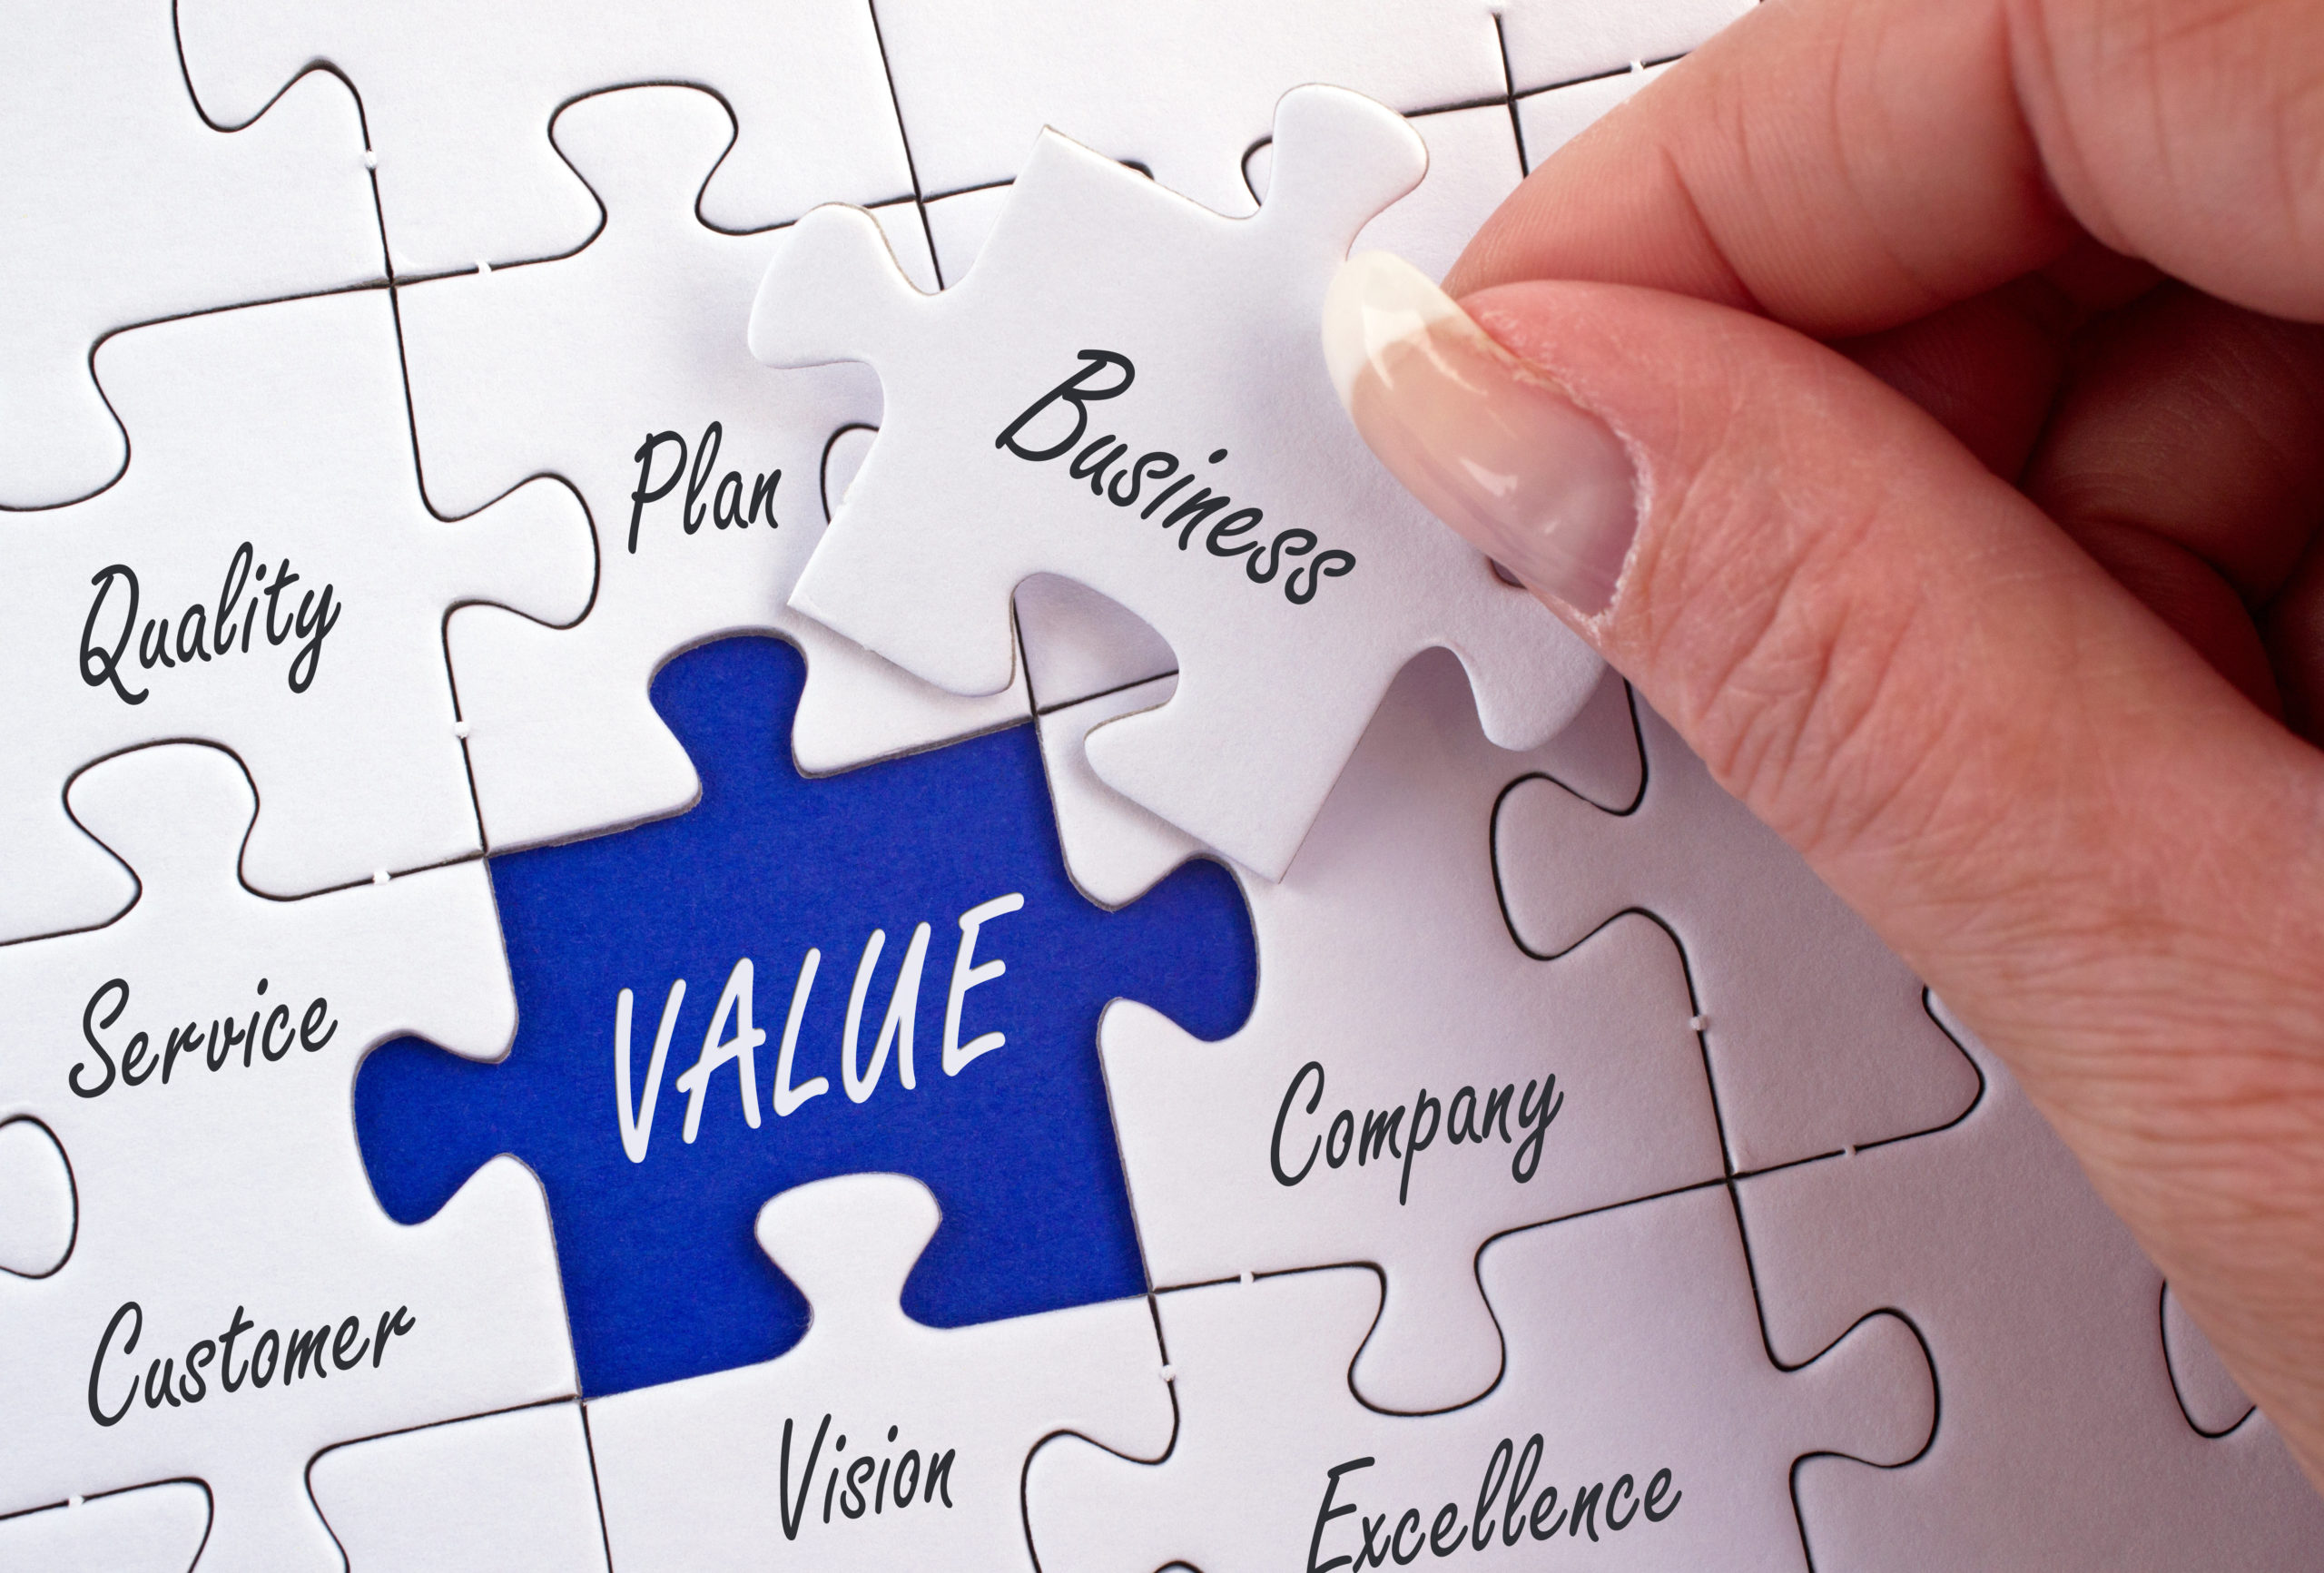 Trends We Like Part 2: Brand Purpose and Values